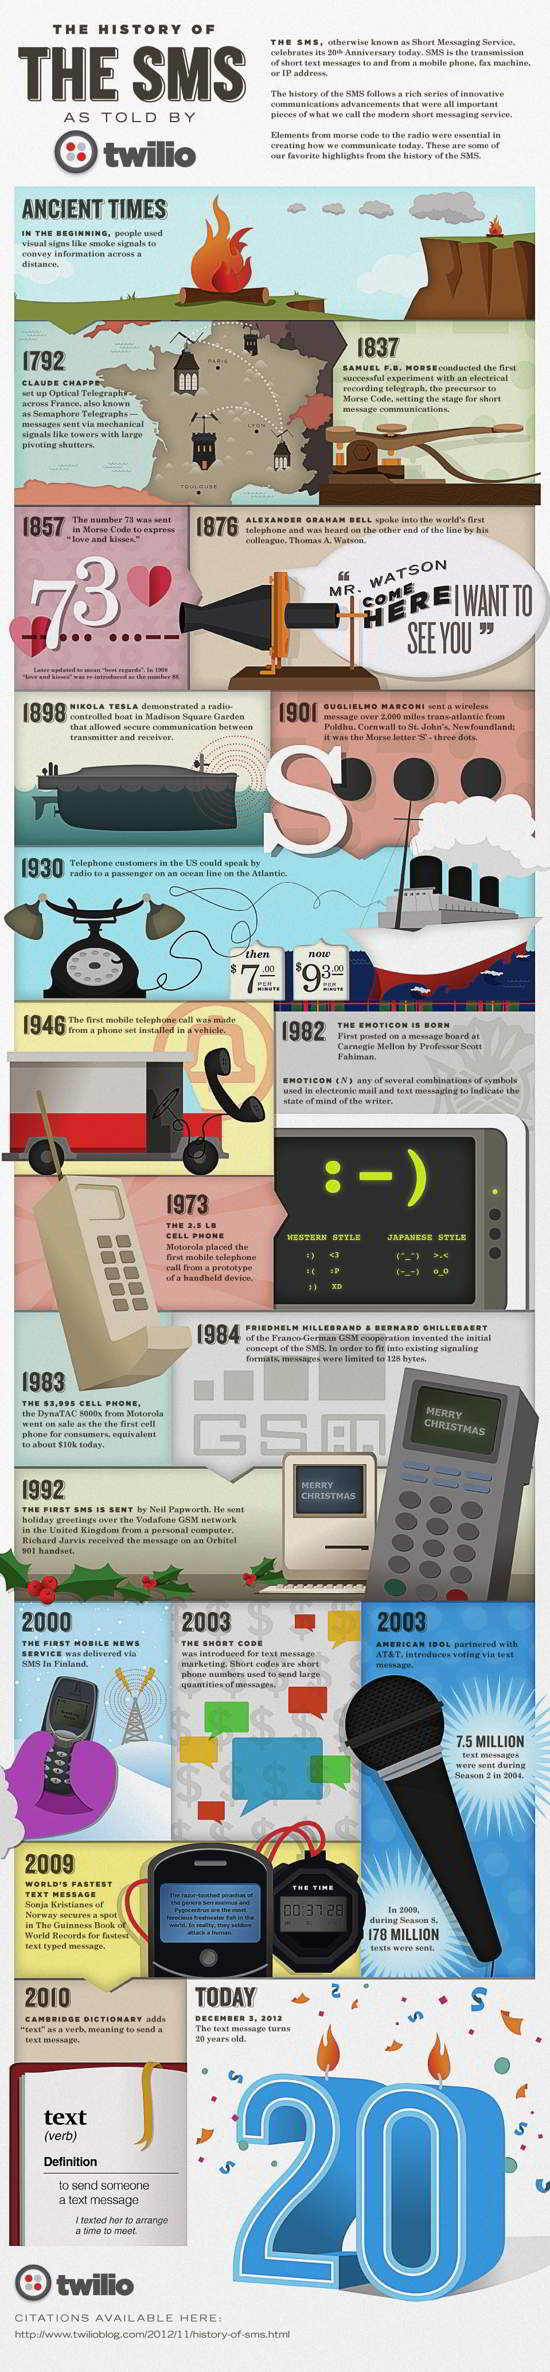 15 Texting Turns 20! The History of SMS